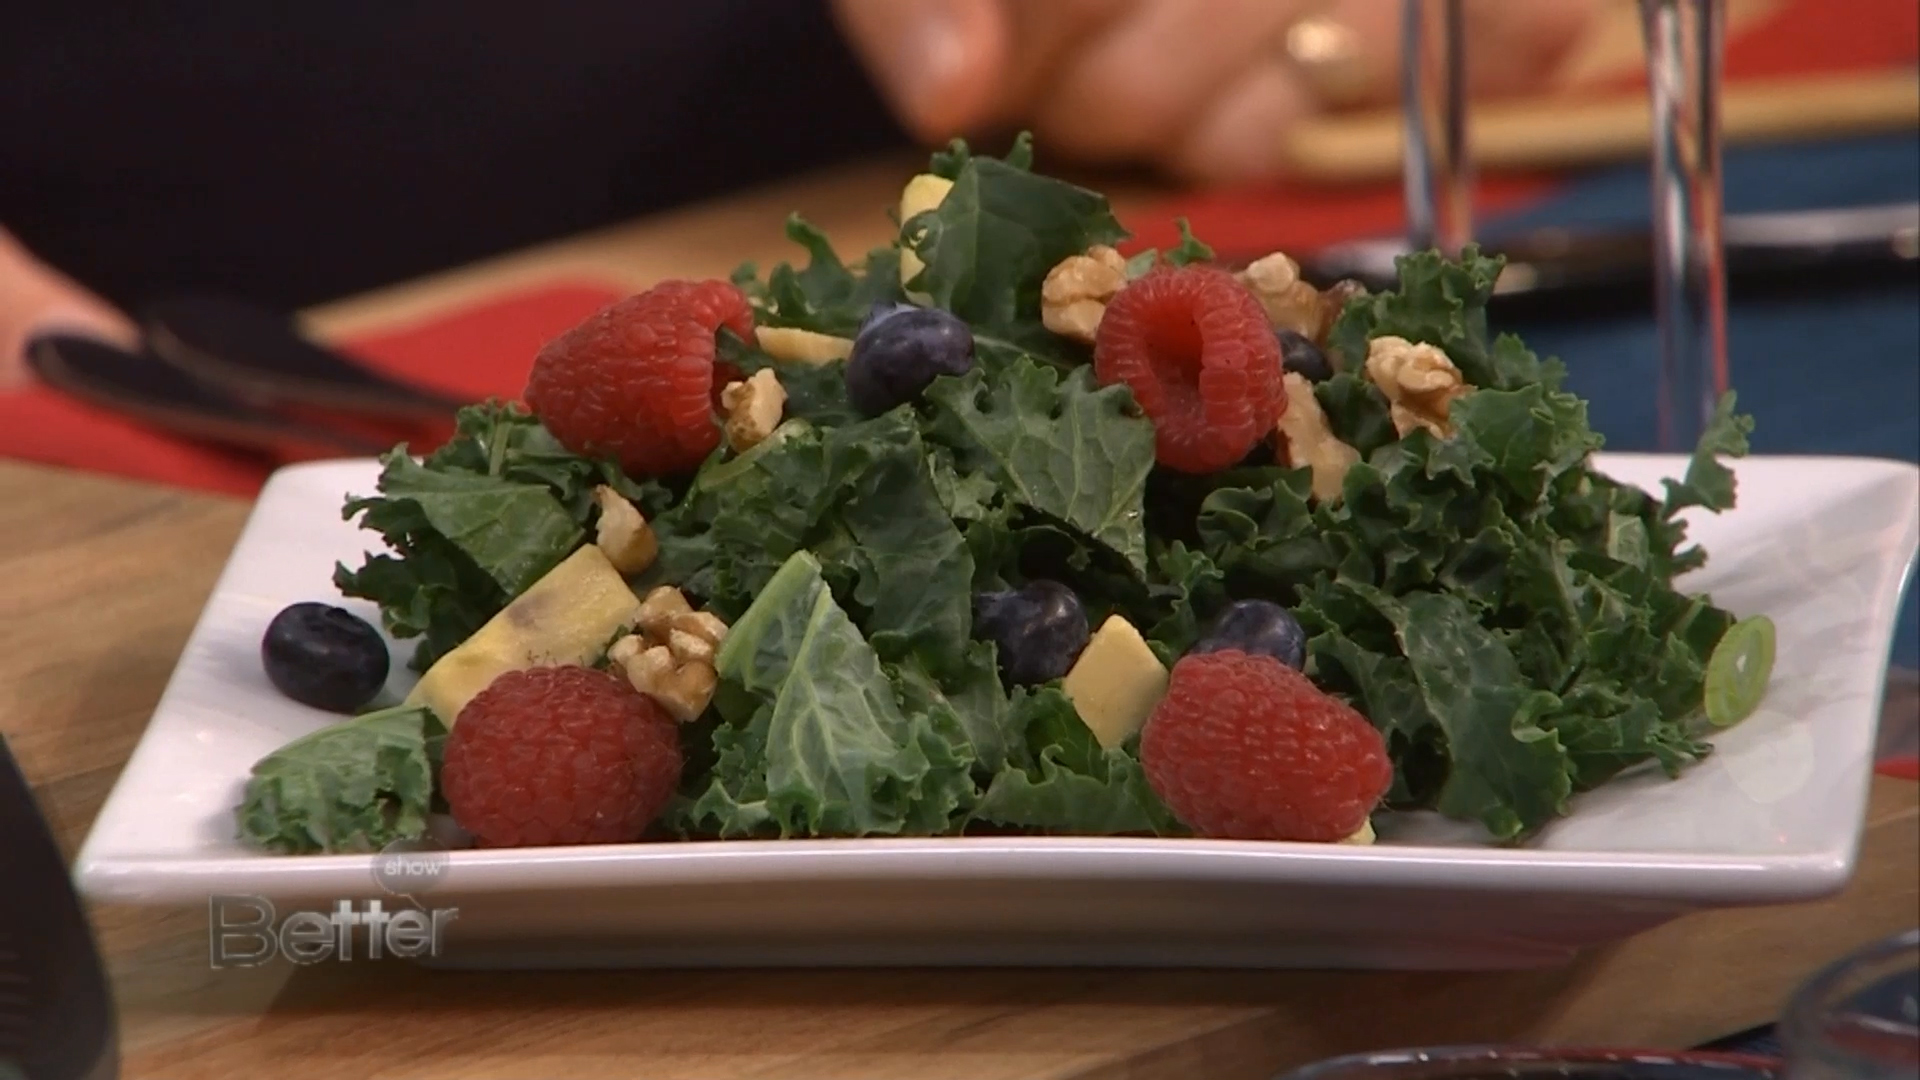 Raspberry and Blueberry Kale Salad Recipe